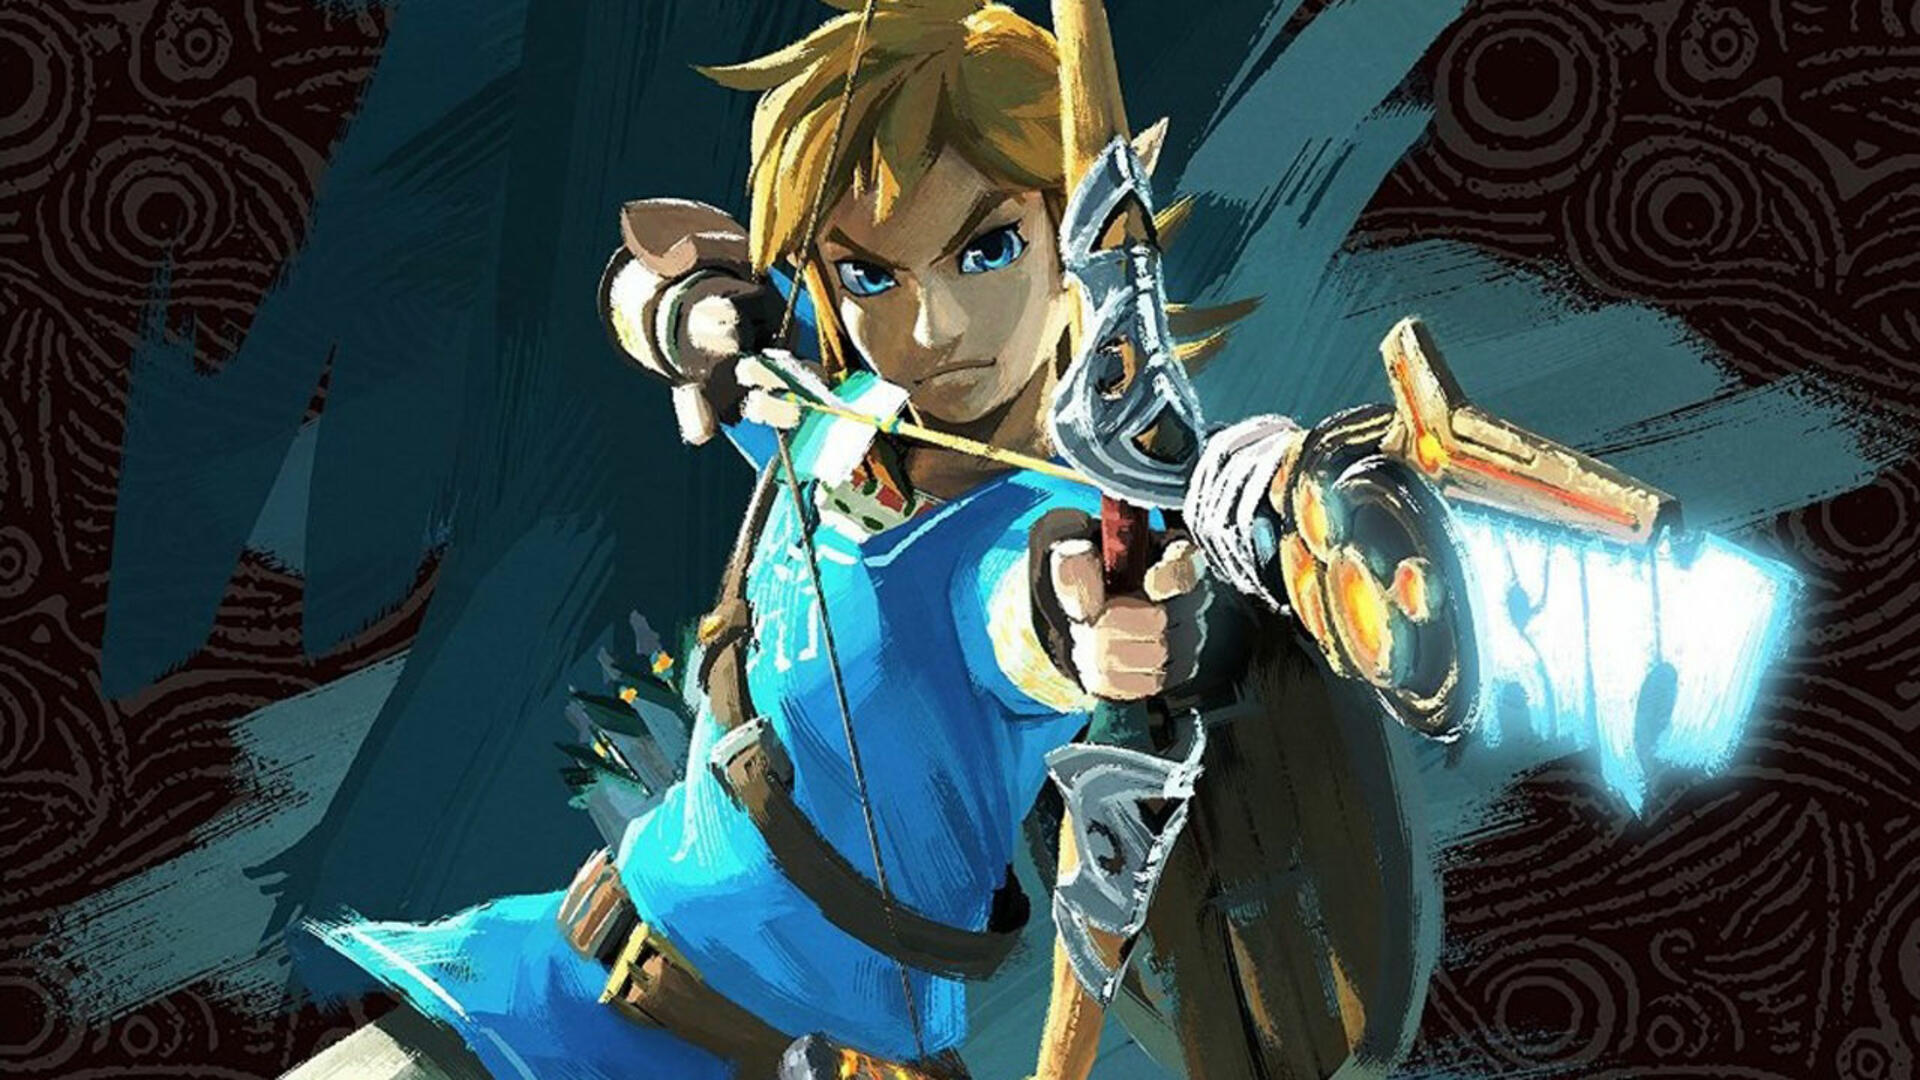 Zelda Breath of the Wild Best Weapons - The Best Swords and Heavy